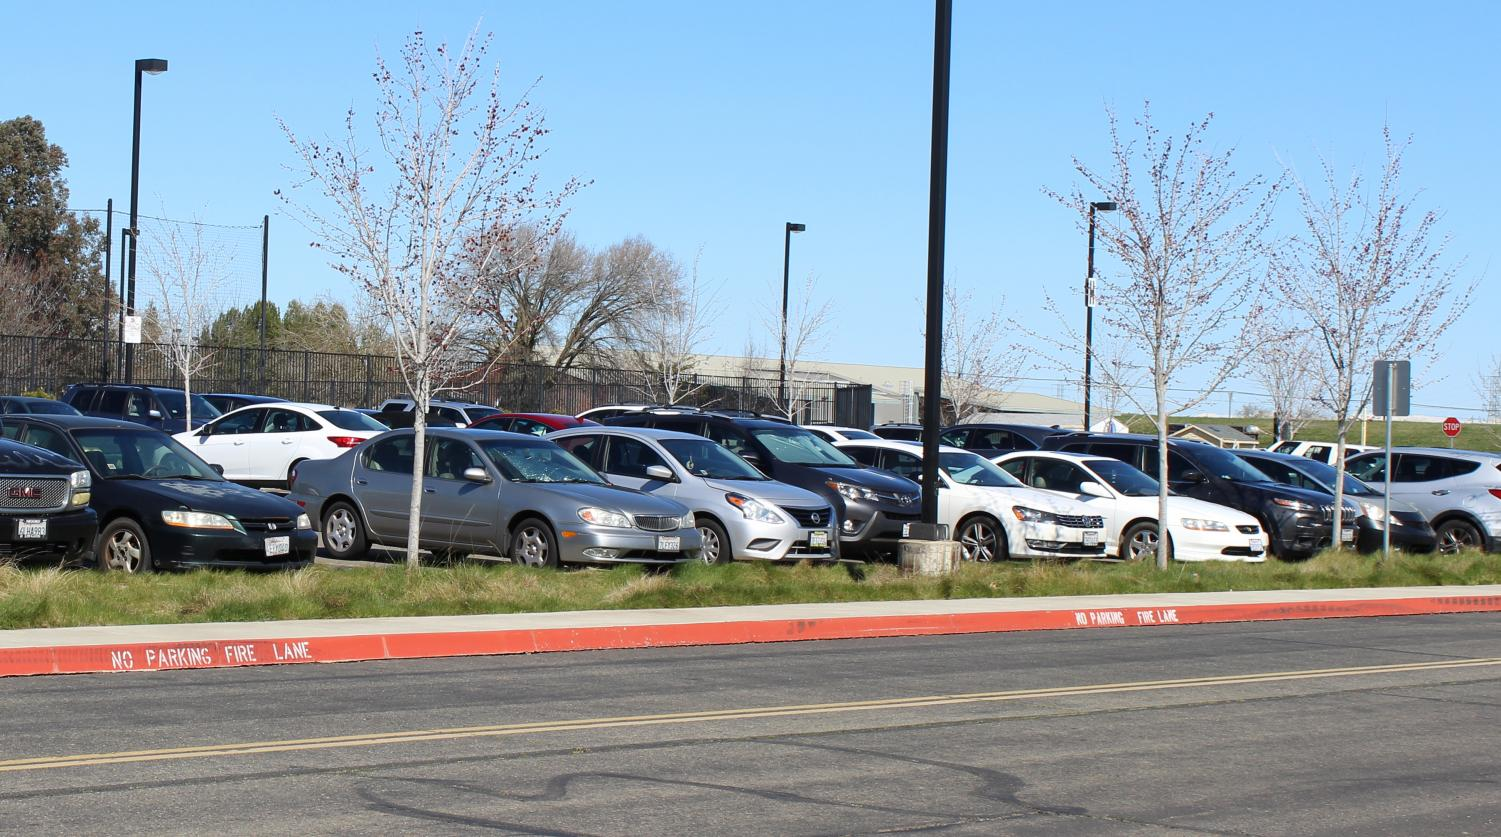 If Assembly Bill 302 is passed, homeless community college students would be permitted to park in safe lots.